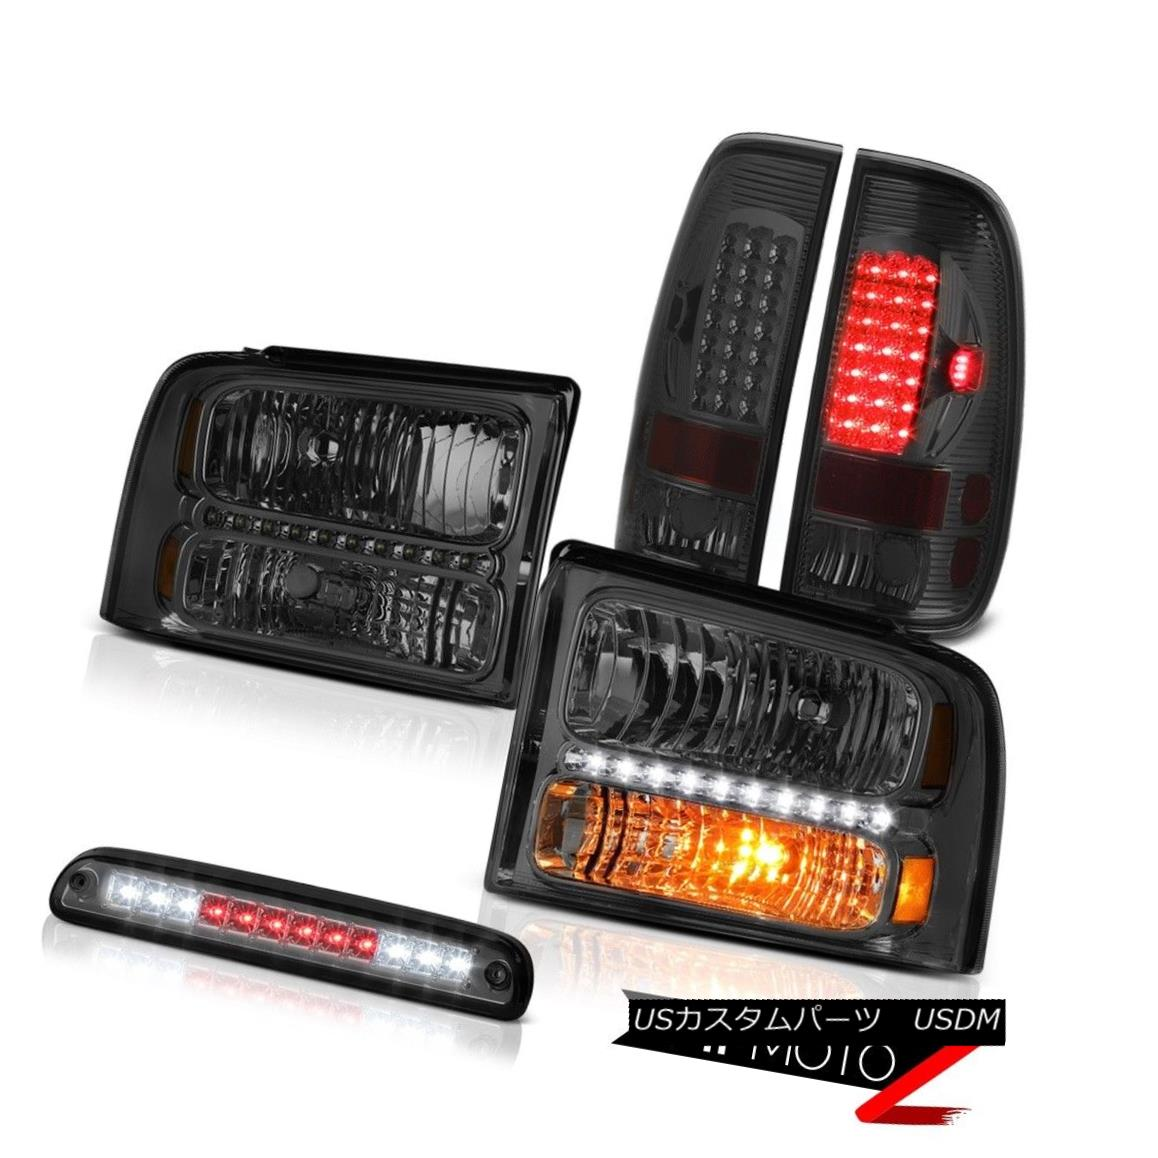 ヘッドライト 2005 2006 2007 F450 F550 PAIR Smoke Headlights Tail Light LED Tinted Third Brake 2005 2006 2007 F450 F550 PAIRスモークヘッドライトテールライトLED Tinted Third Brake